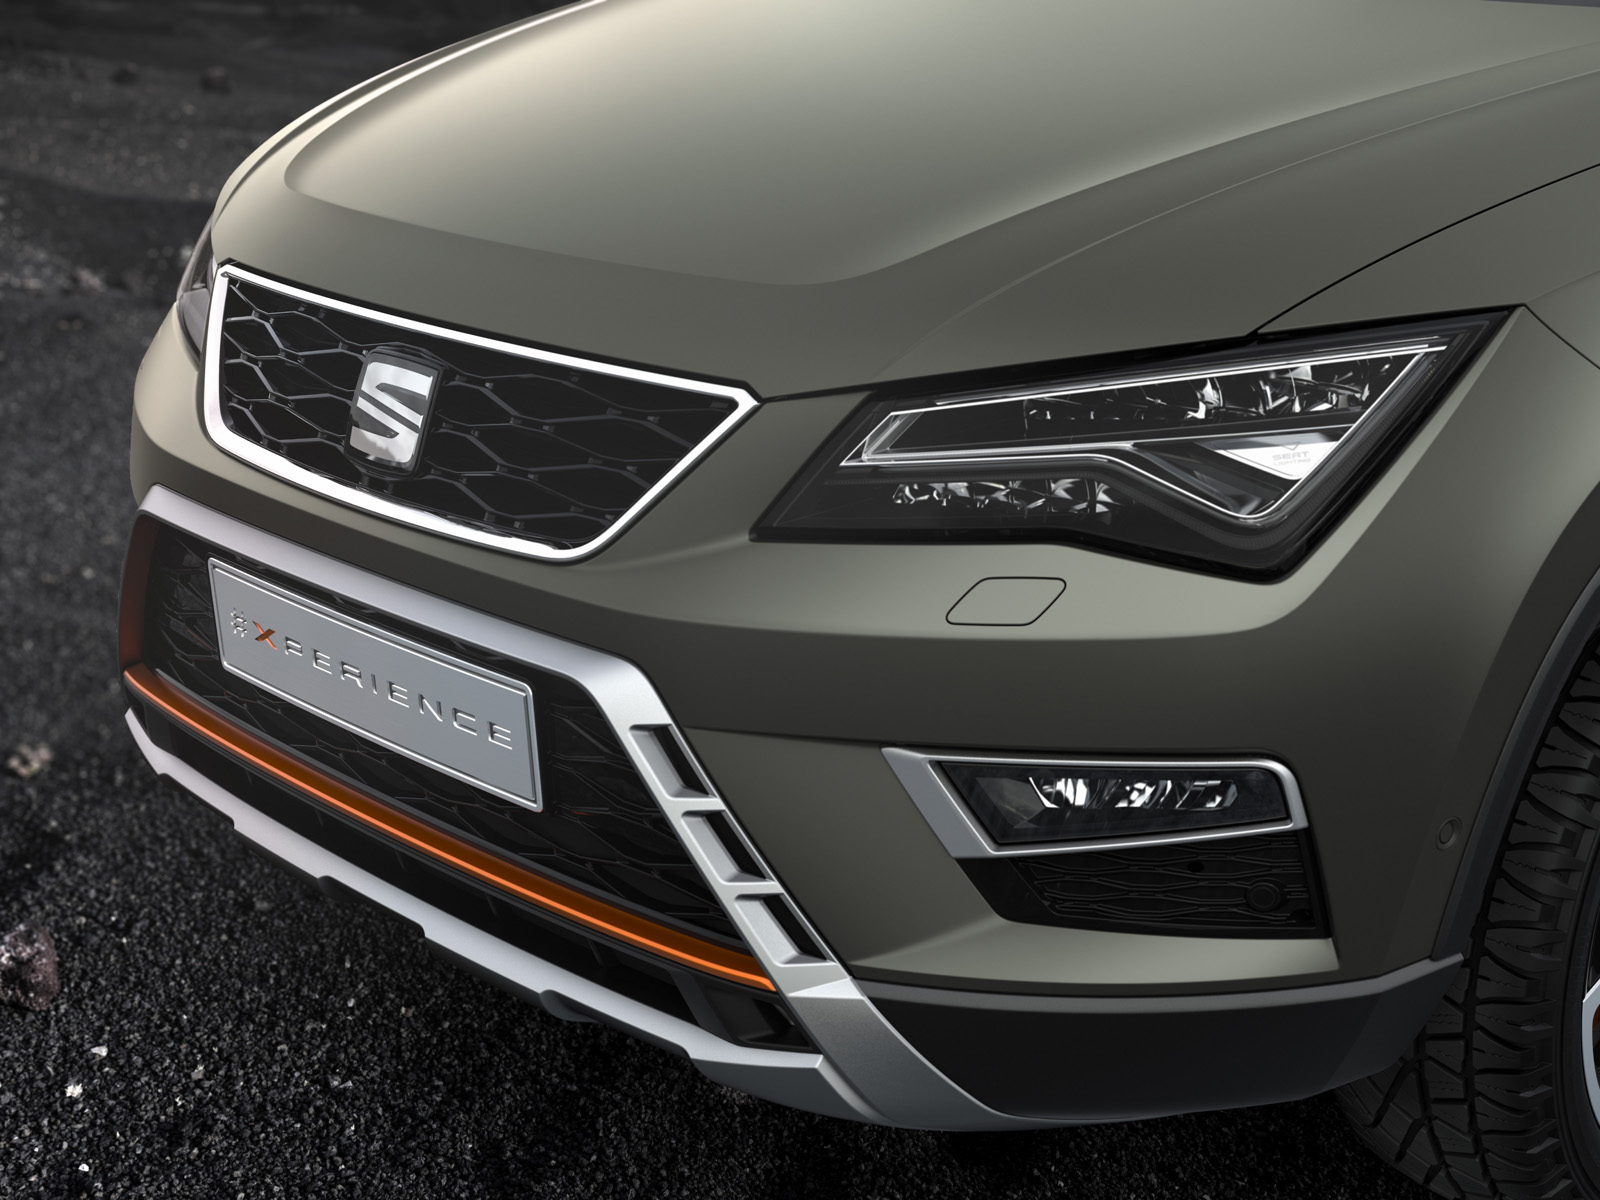 seat 39 s upcoming arona suv to get rugged off road version carscoops. Black Bedroom Furniture Sets. Home Design Ideas